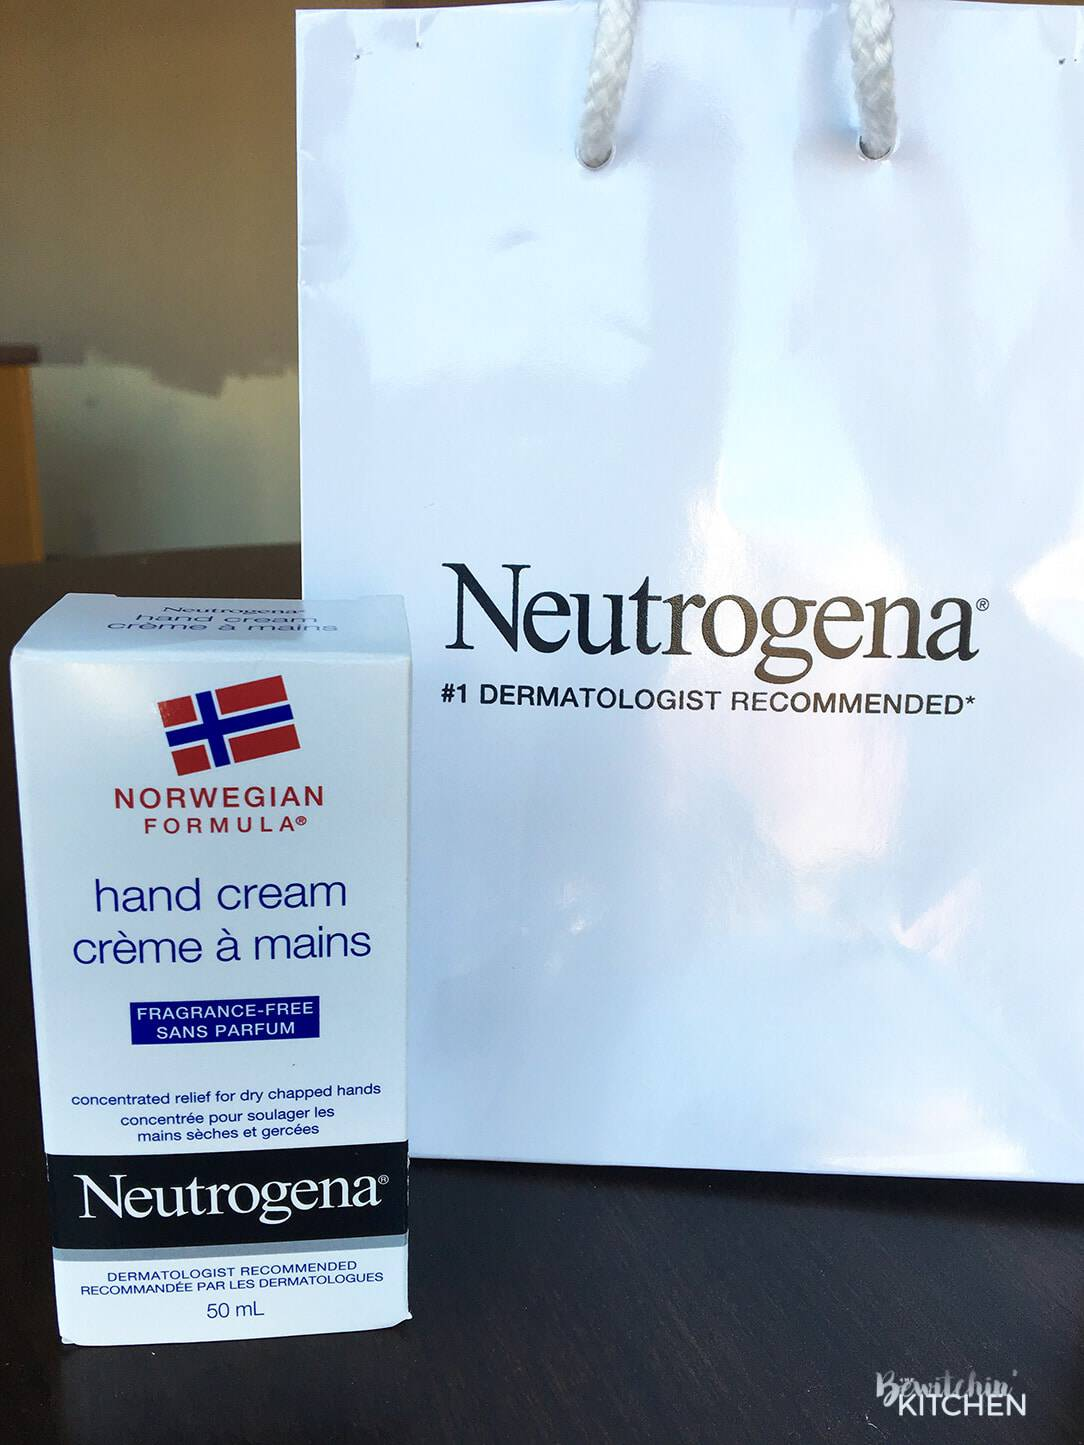 If you do a lot of DIY and home renovations, this hand cream is your saving grace. Neutrogena Norwegian Formula Hand Cream soothes cracked hands.